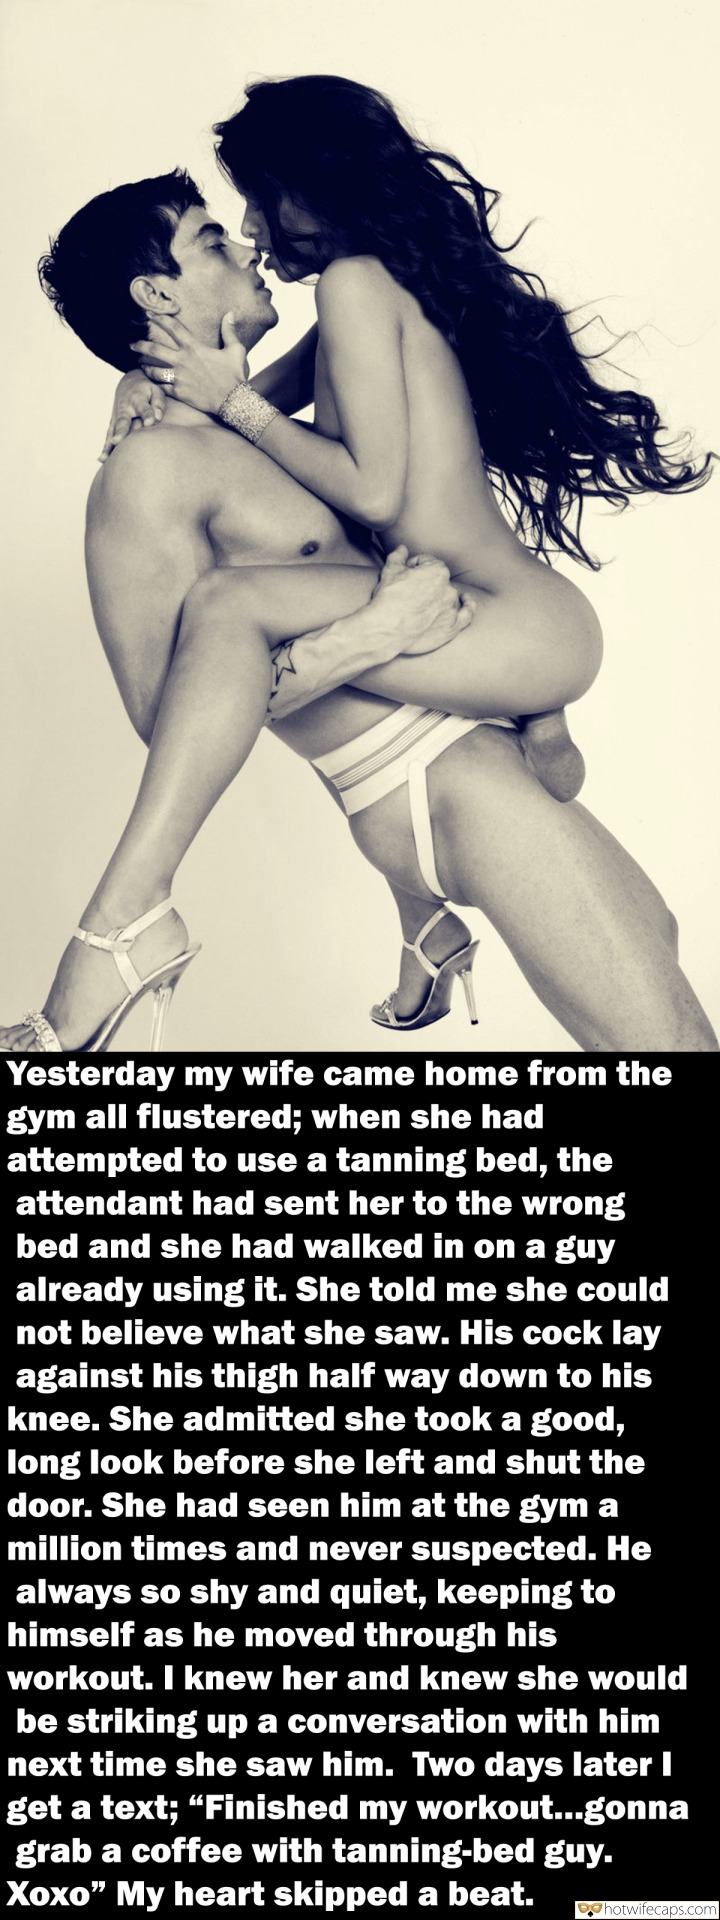 Cheating hotwife caption: Yesterday my wife came home from the gym all flustered; when she had attempted to use a tanning bed, the attendant had sent her to the wrong bed and she had walked in on a guy already using it. She...